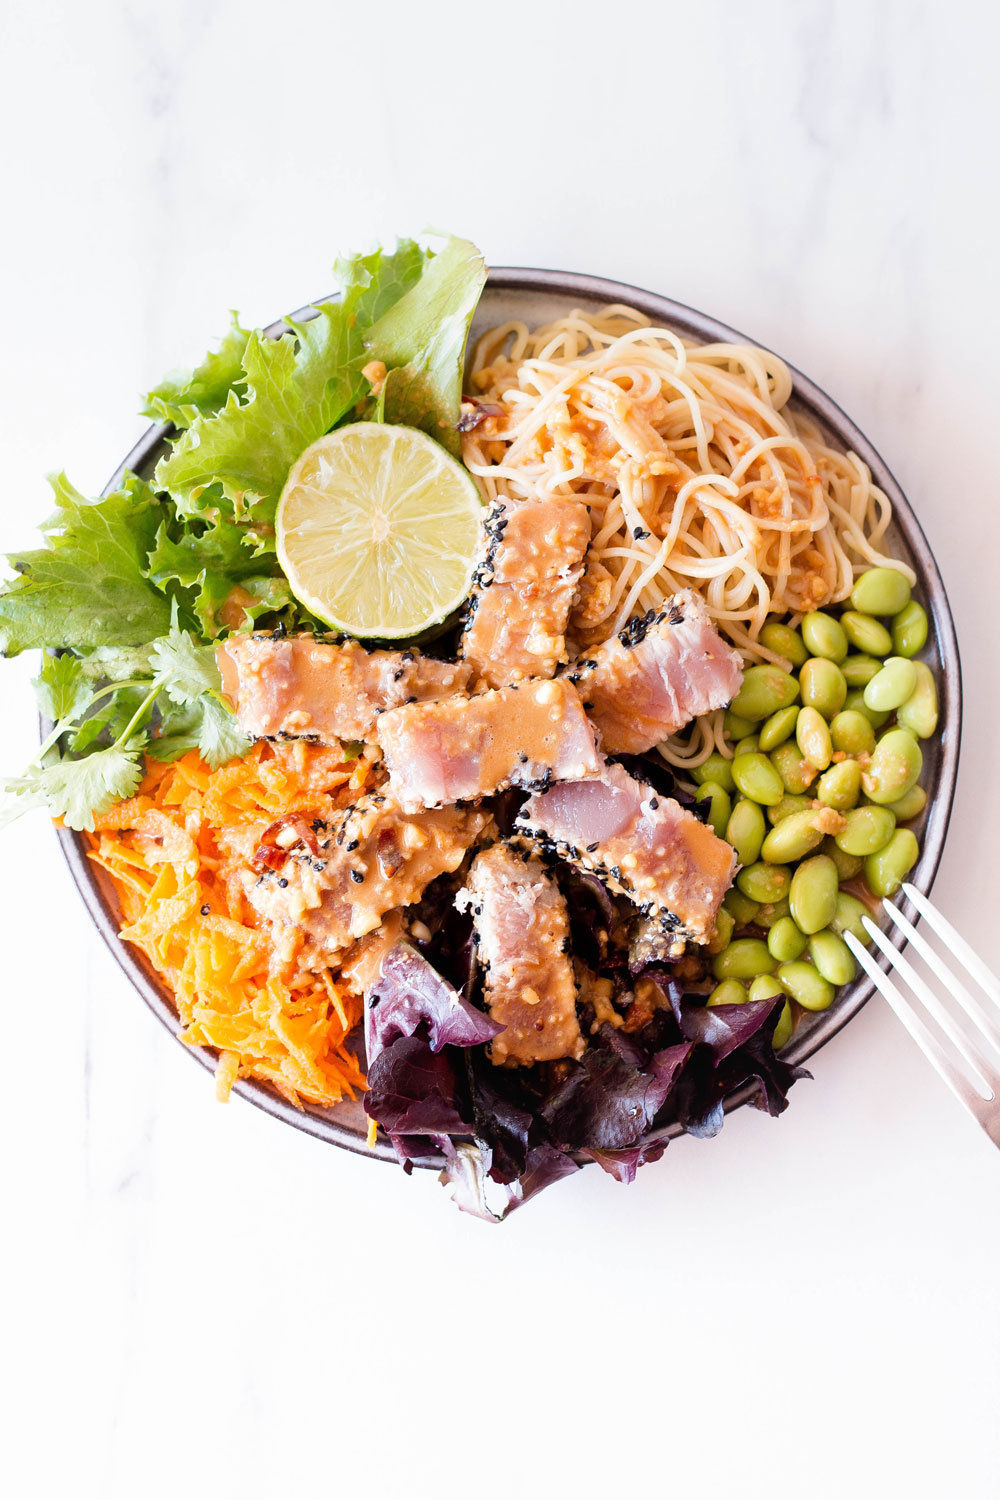 Whether you're searching for a weeknight dinner or if you're tired of the same old canned tuna recipes, this Fresh Tuna Salad With Homemade Peanut Dressing has you covered. High-quality fresh tuna is a delicious source of healthy omega-3 fatty acids, protein, and requires almost no effort in the kitchen. https://www.spotebi.com/recipes/fresh-tuna-salad-homemade-peanut-dressing/